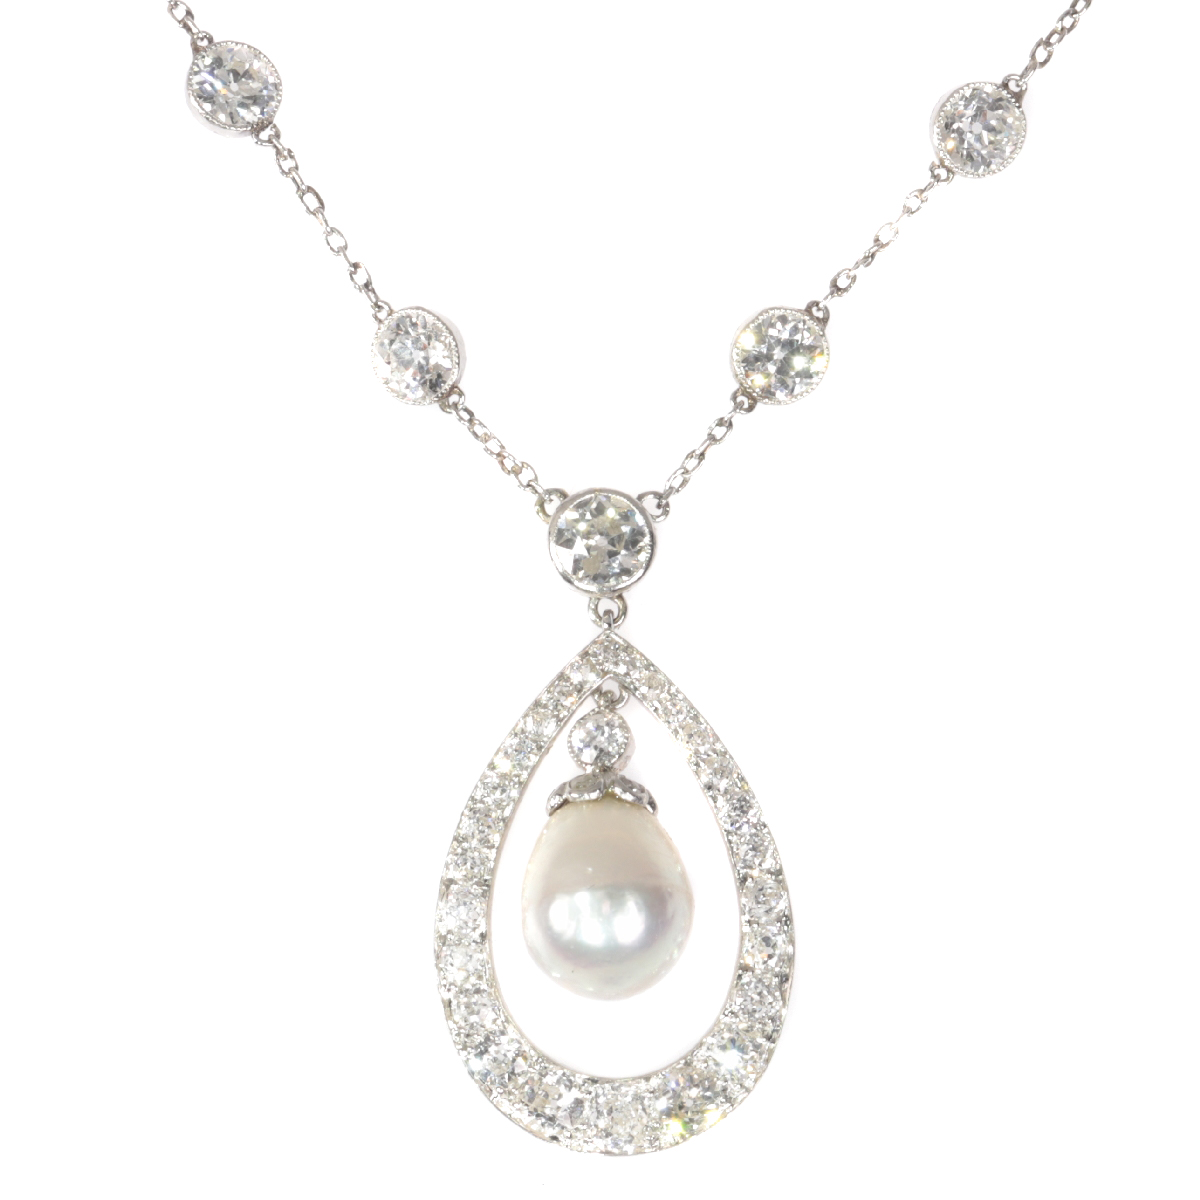 Platinum Art Deco diamond necklace with natural drop pearl of 7 crts